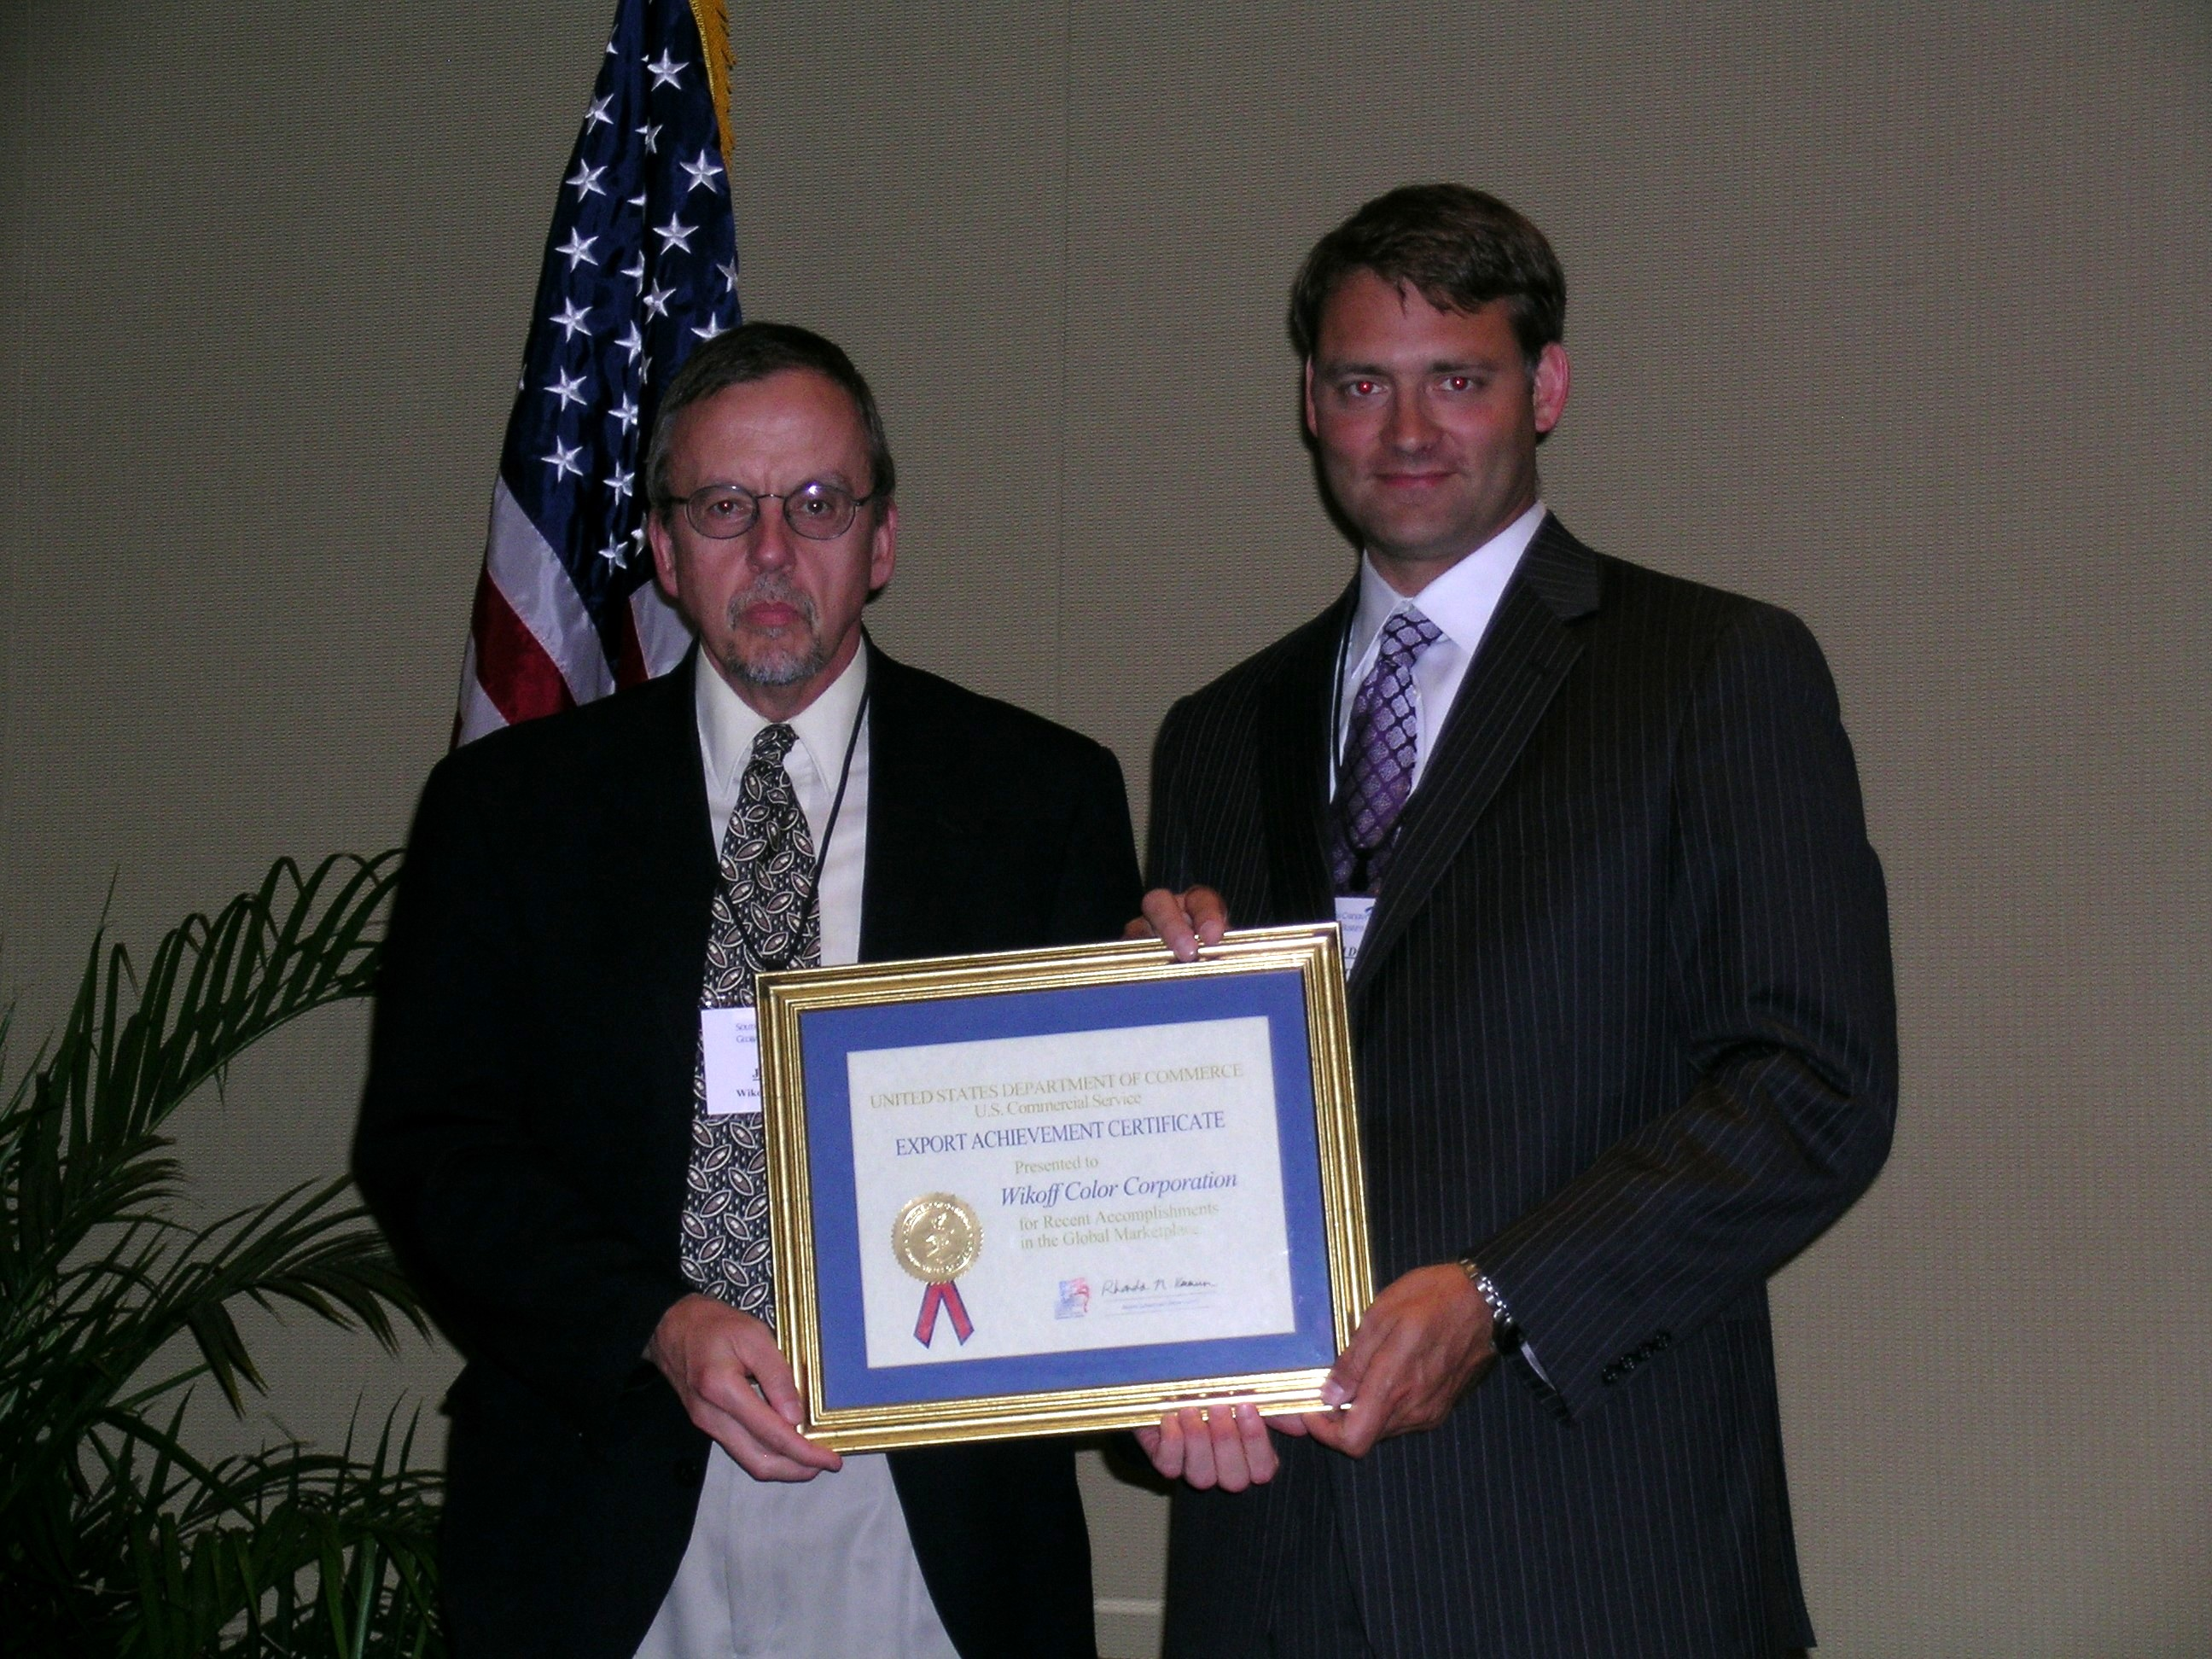 Accepting the Award: Jim, Freid, Director – Distributor and Export Sales